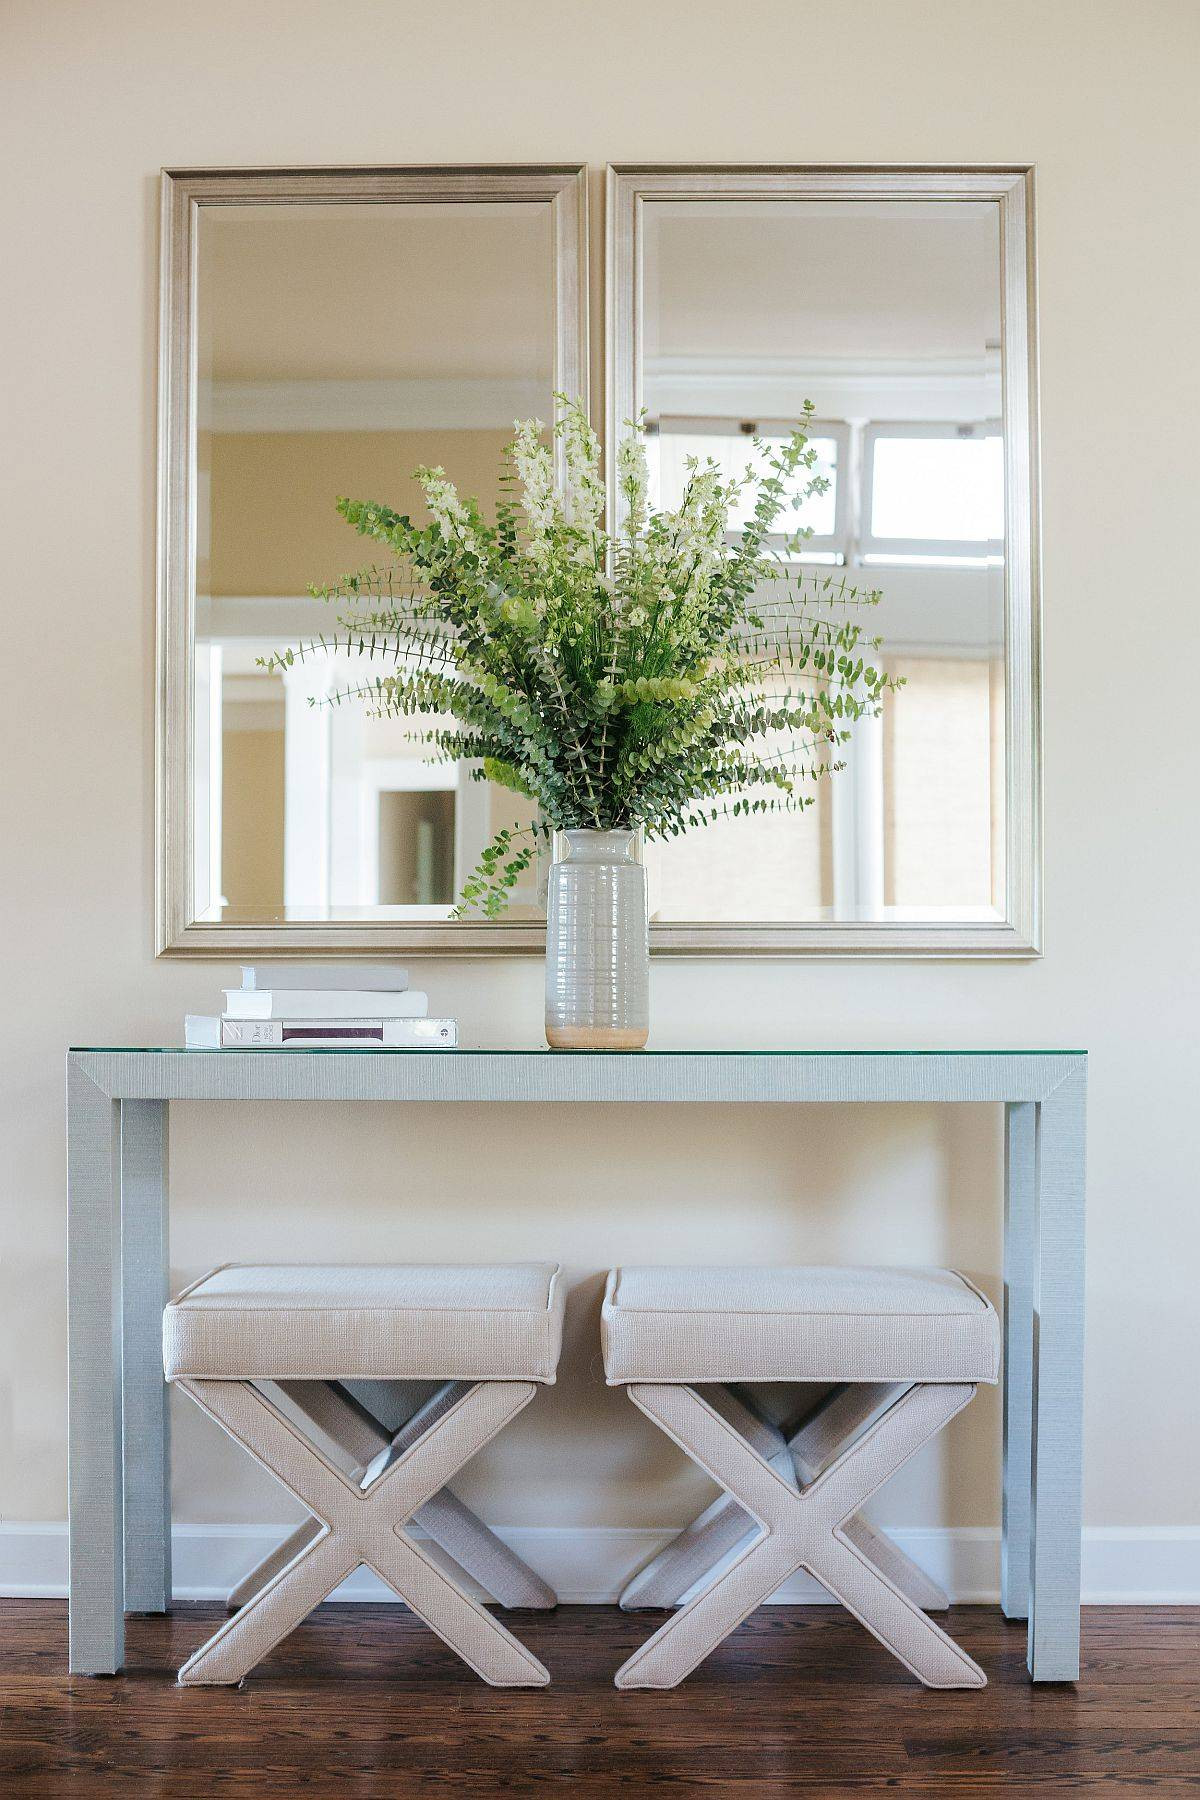 Slim-console-table-with-twin-stools-tucked-underneath-save-ample-space-whle-creating-a-simple-and-lovely-focal-point-91071